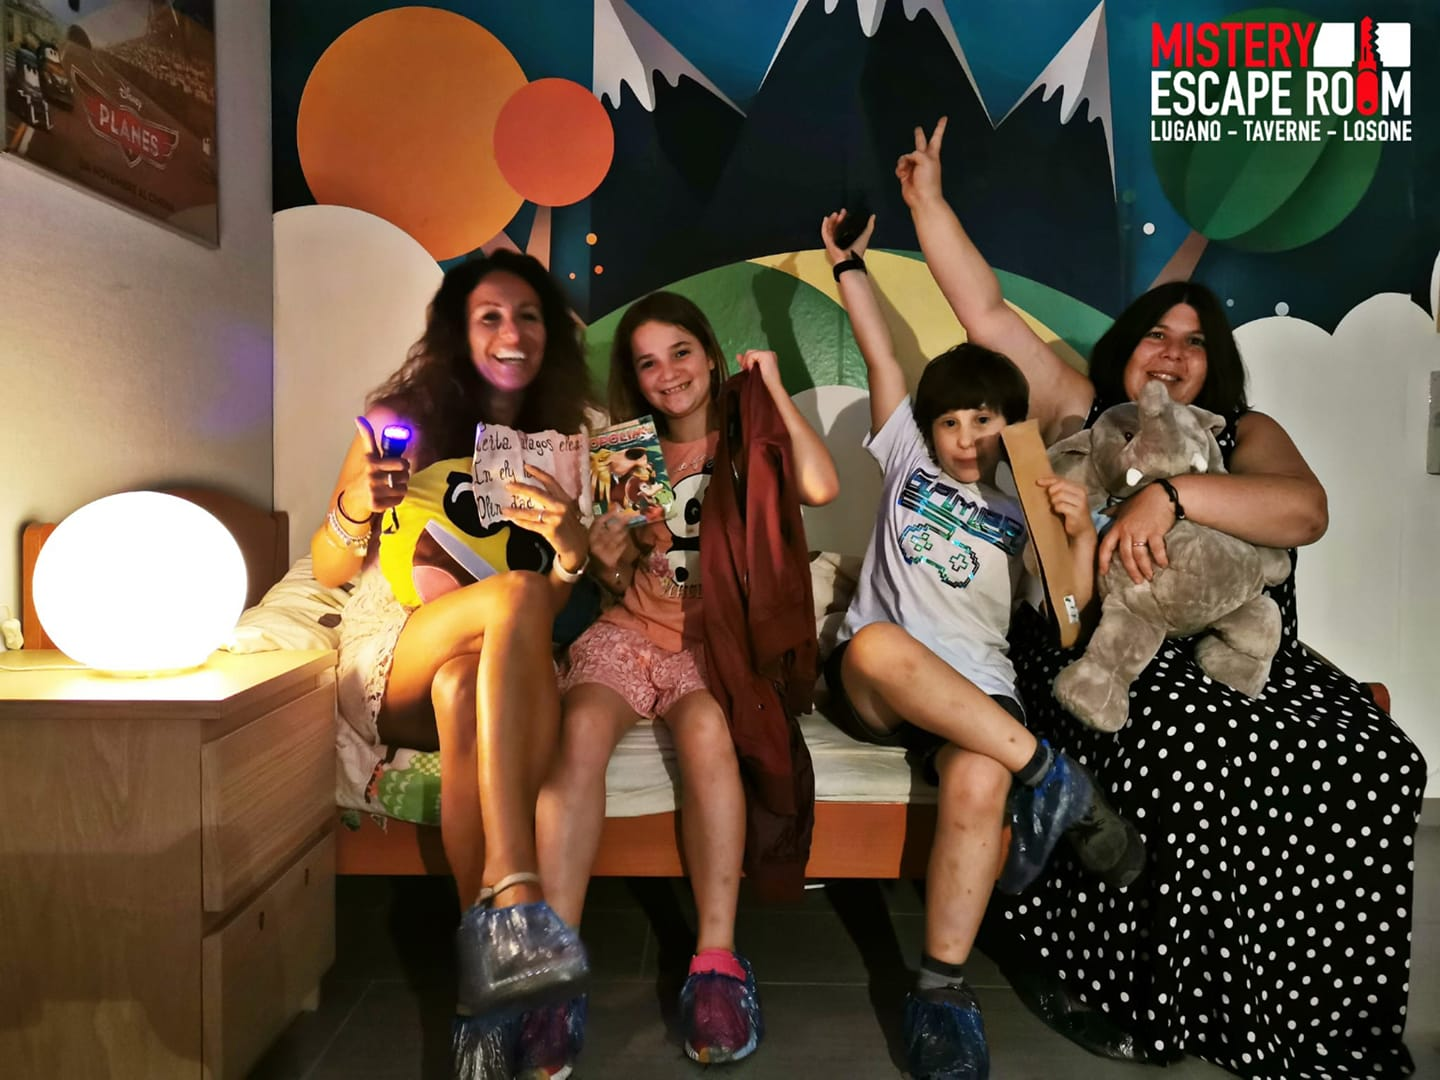 dream escape room